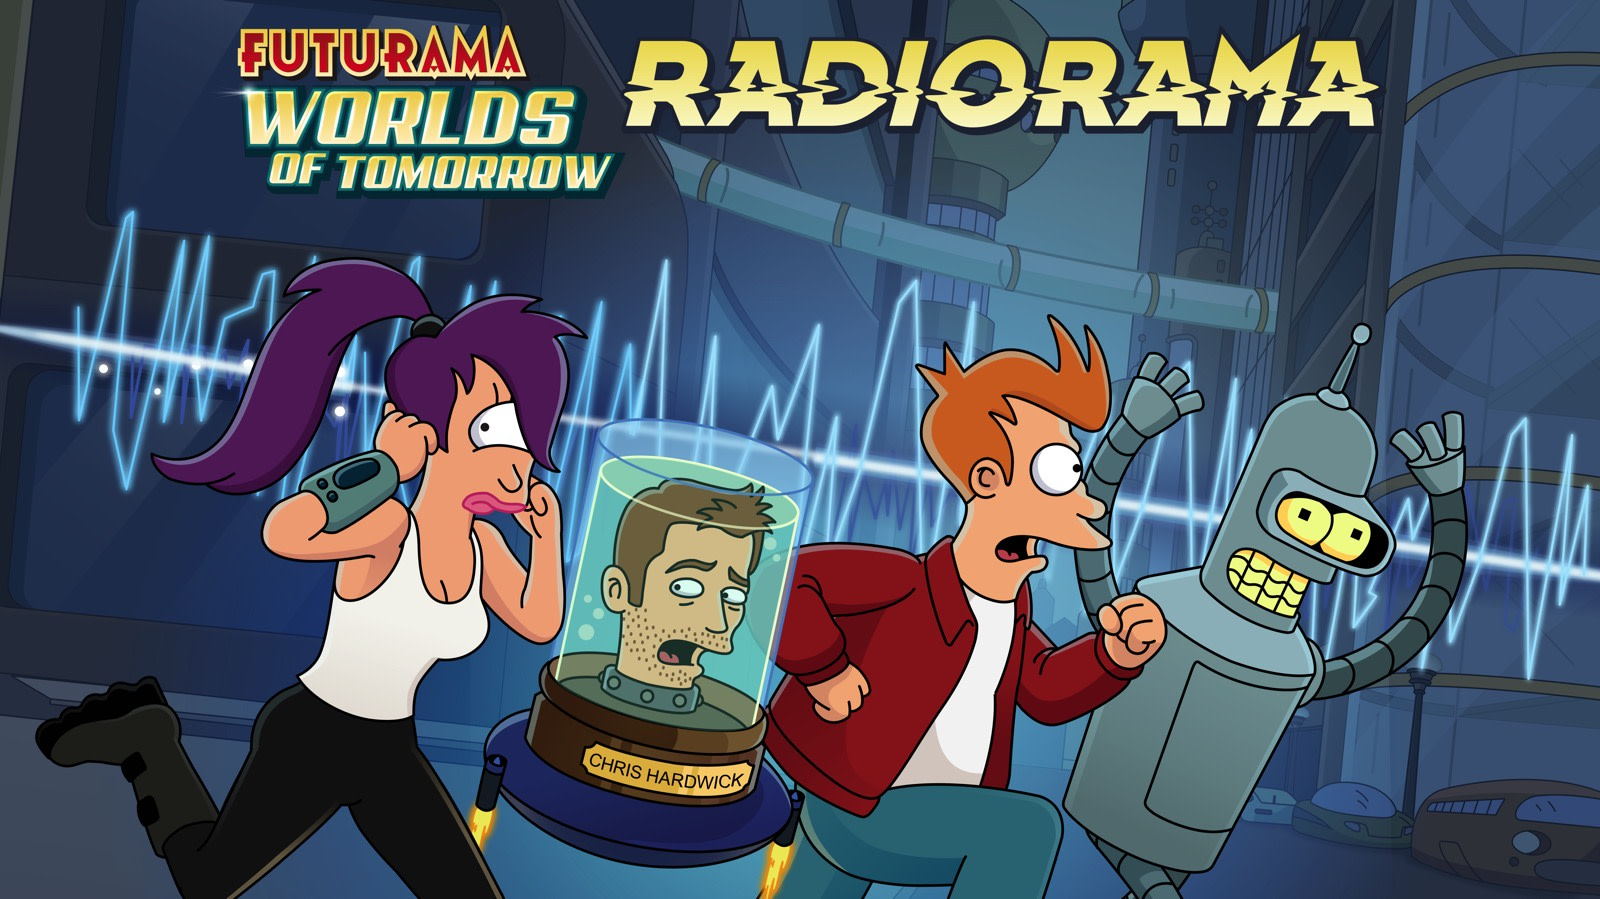 futurama returns for a one off 42 minute podcast episode